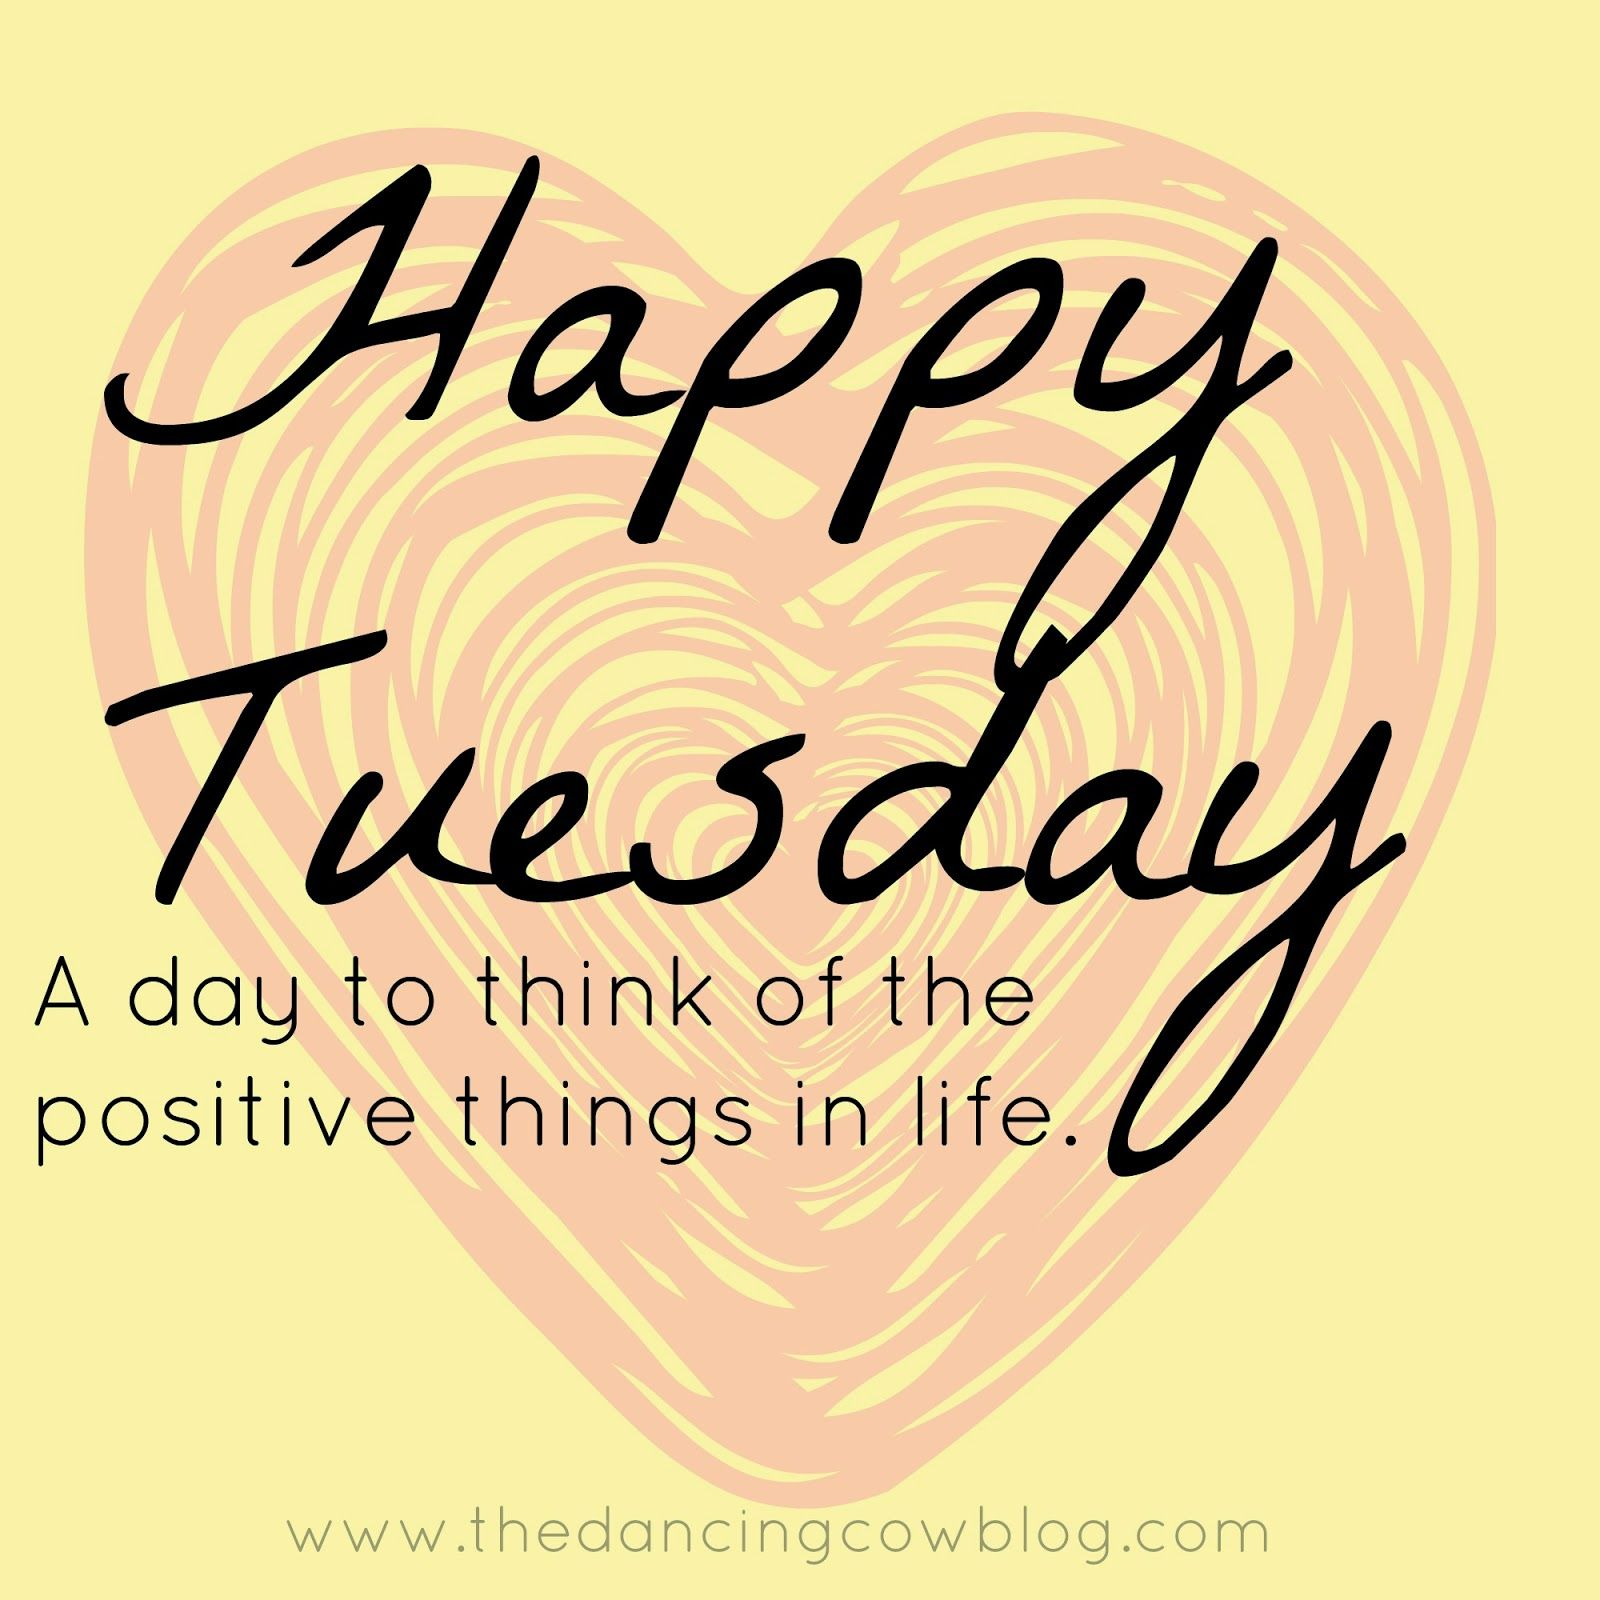 Tuesday Tuesday motivation quotes, Happy tuesday quotes